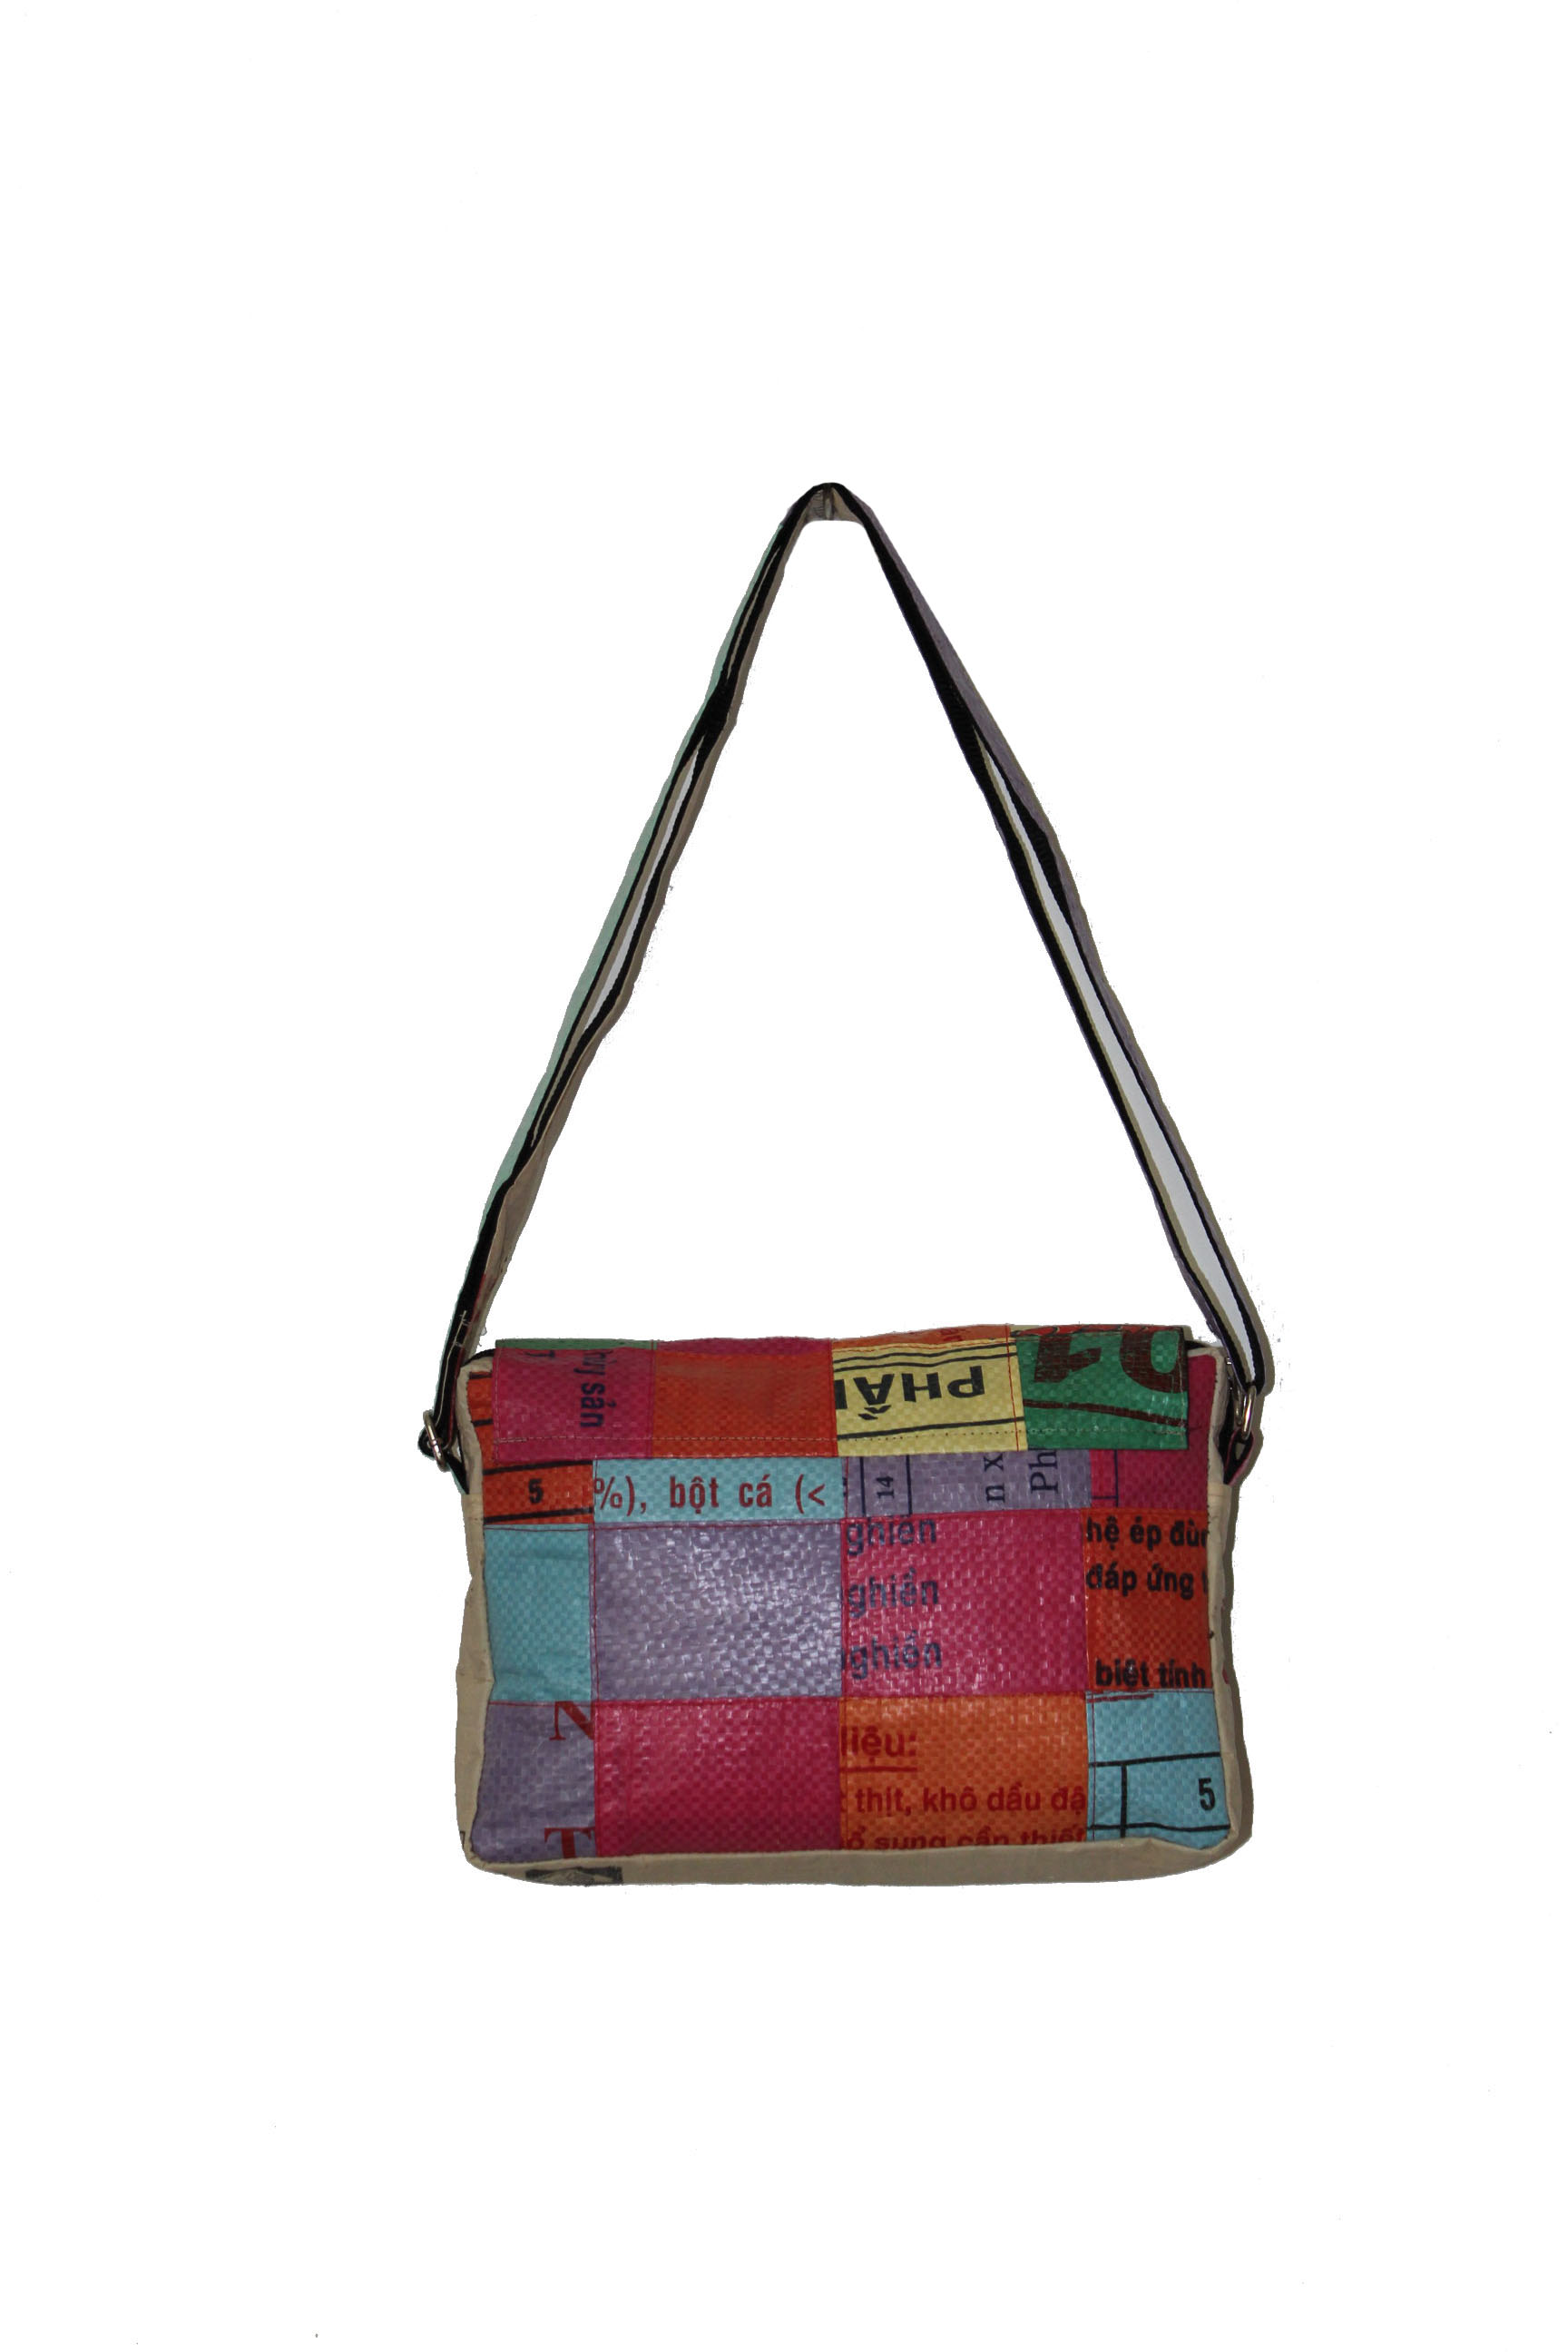 Recycled Patch Shoulder Bag Square Design Recycled Bags